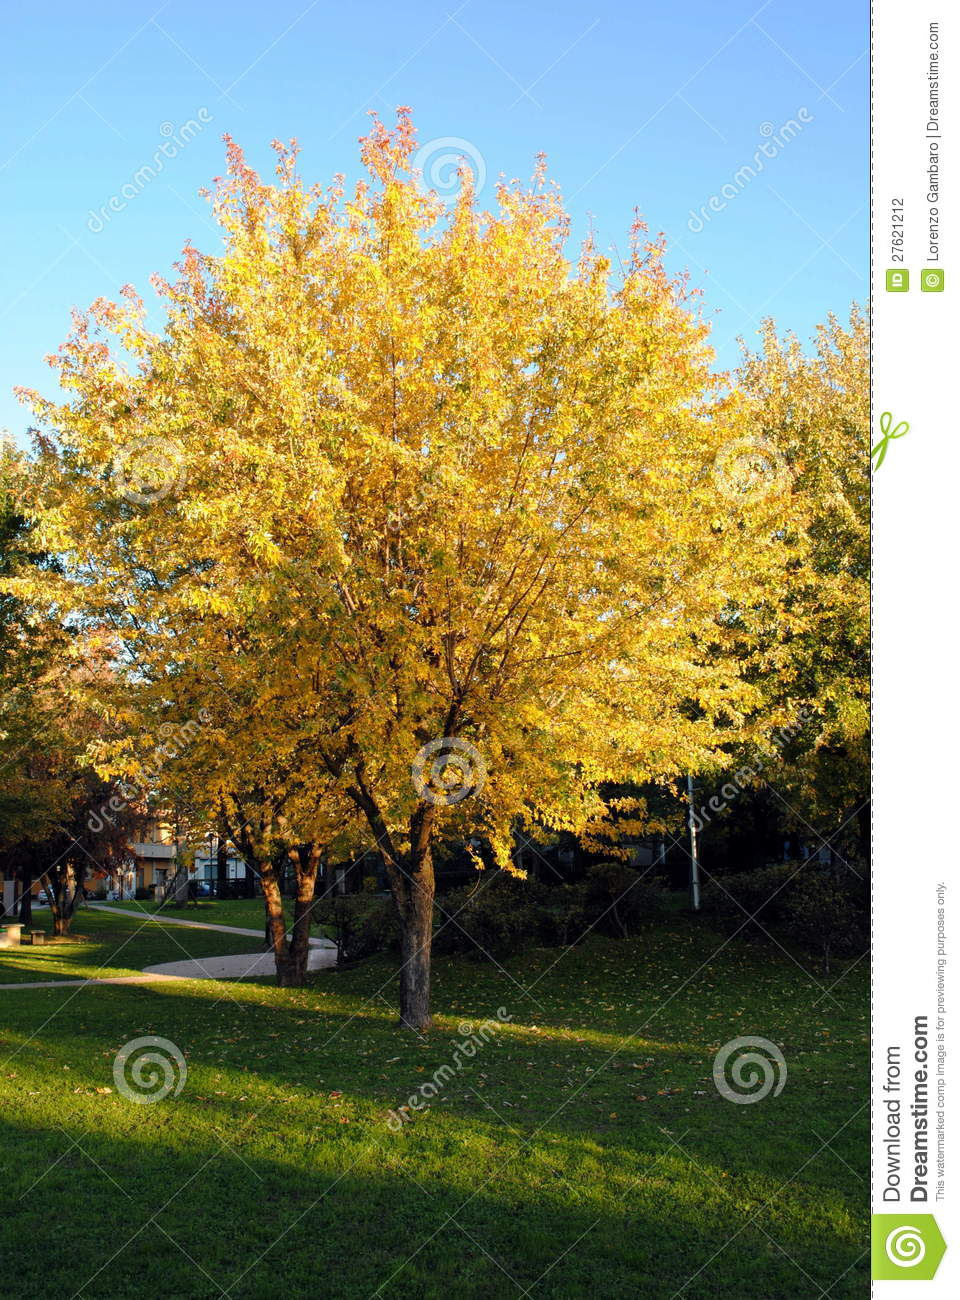 Colorful Fall Scene Wallpaper Yellow Leaves Tree Stock Photography Image 27621212